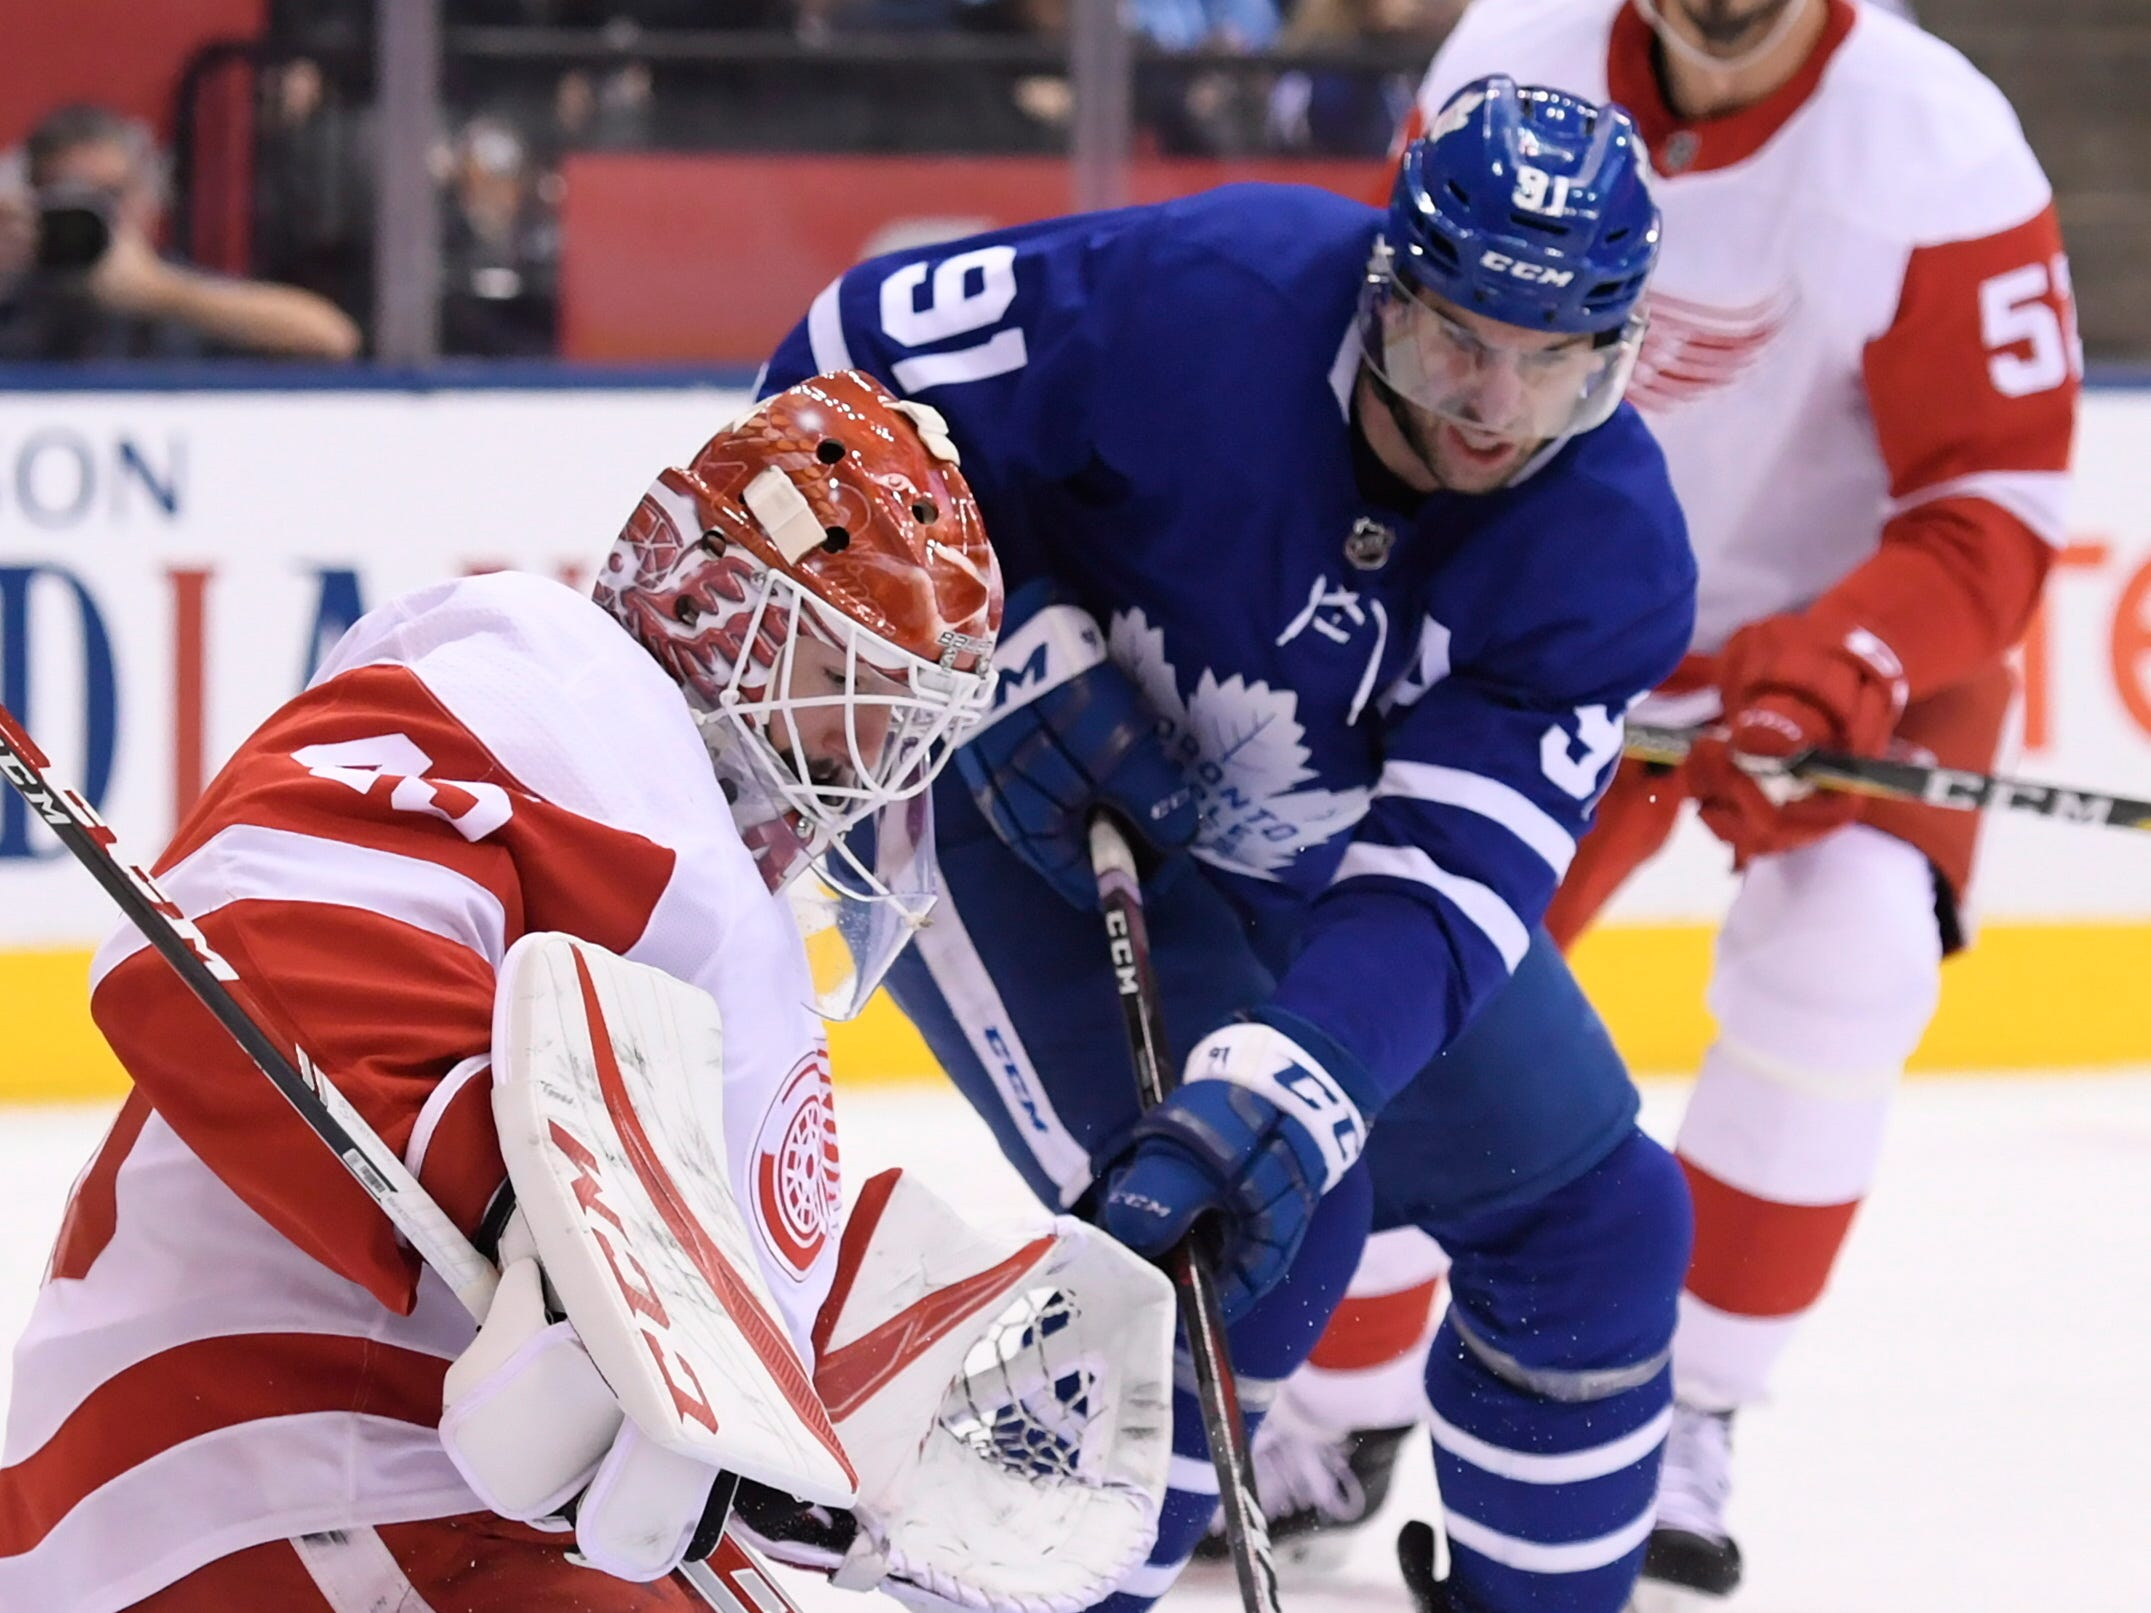 Maple Leafs center John Tavares (91) is stopped by Red Wings goaltender Jonathan Bernier as defenseman Jonathan Ericsson watches.